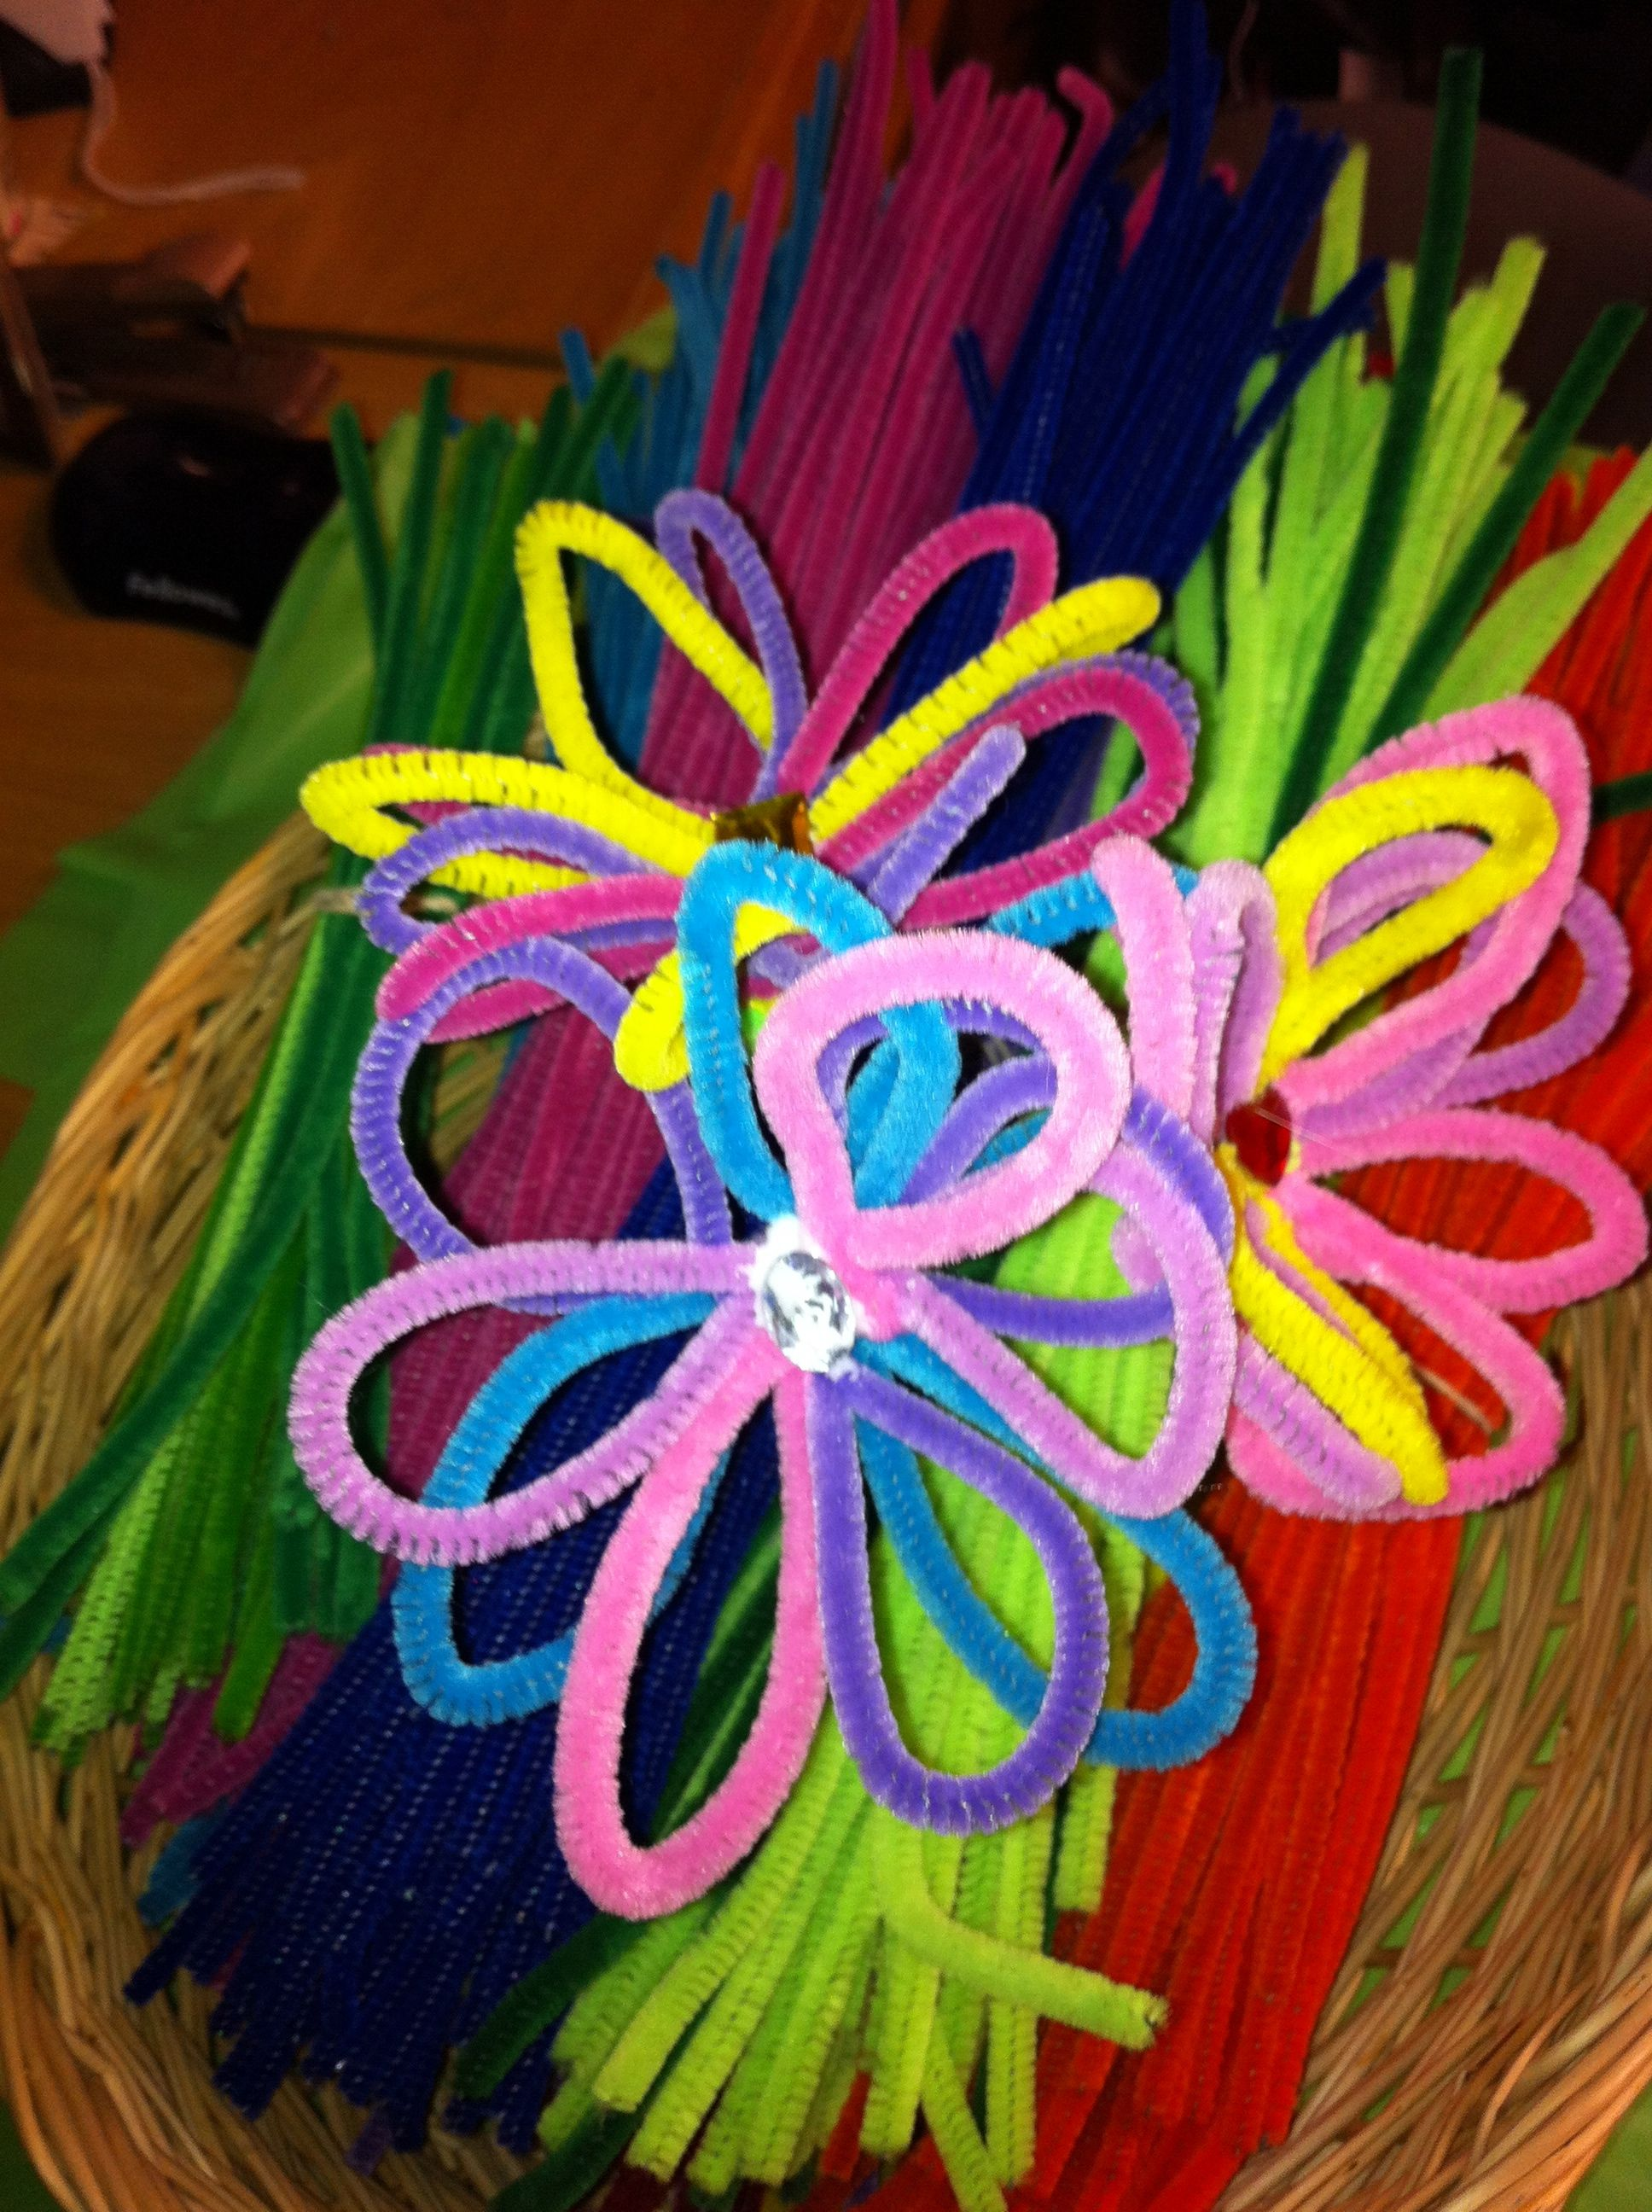 My 7 To 10 Year Old Girls Loved This Craft